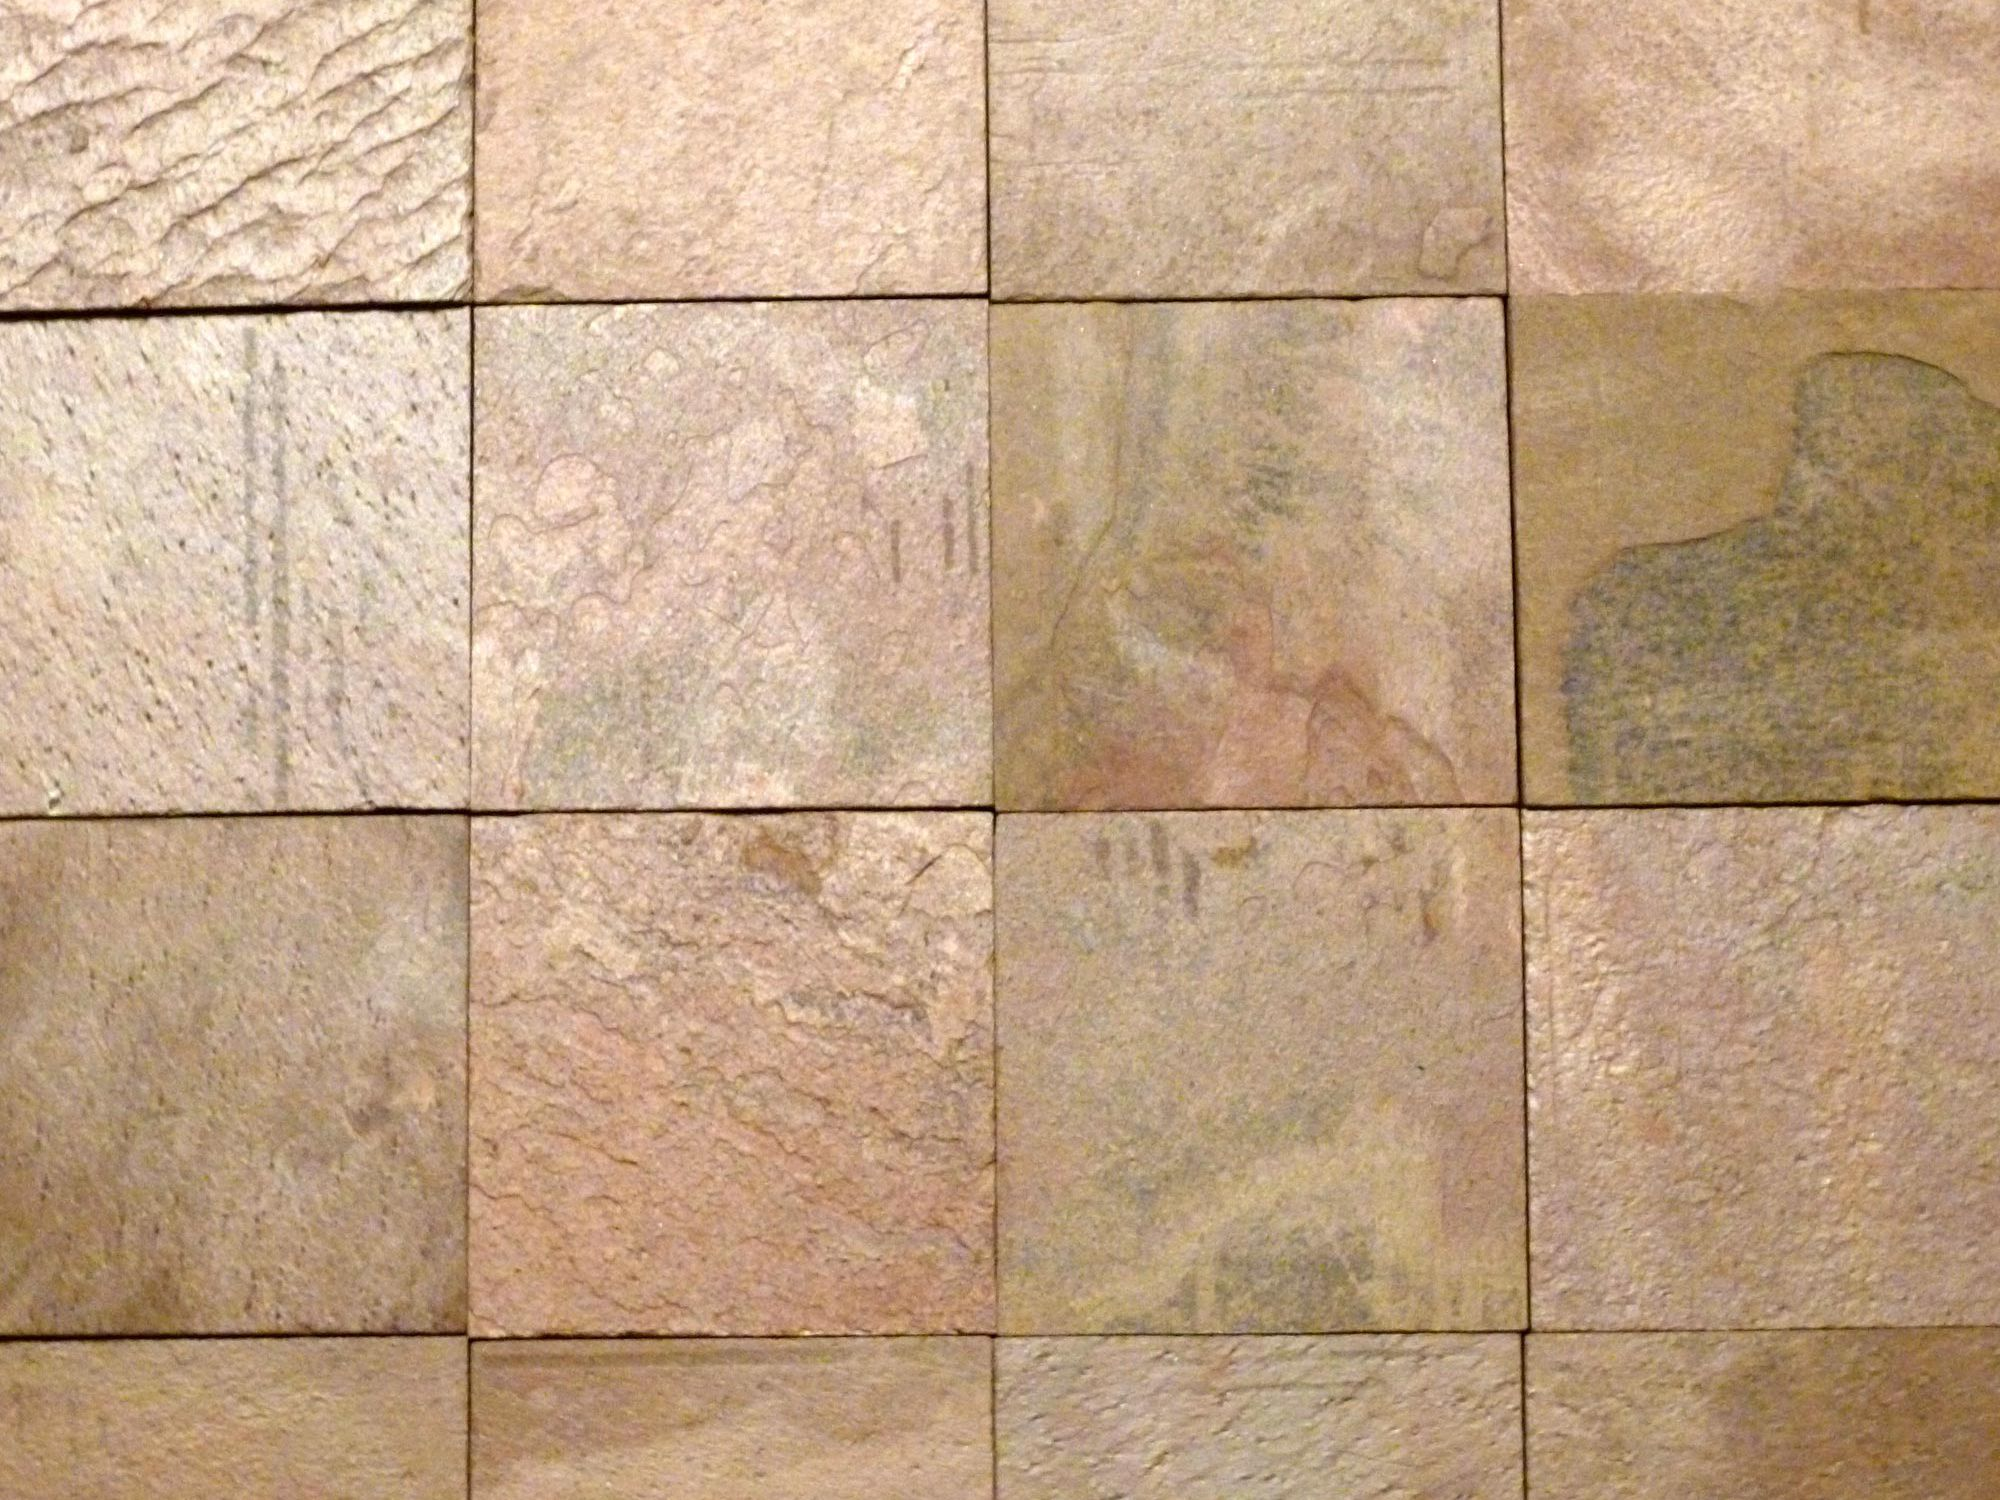 Natural Stone Tile Vs Brick Paver Flooring What S The Difference